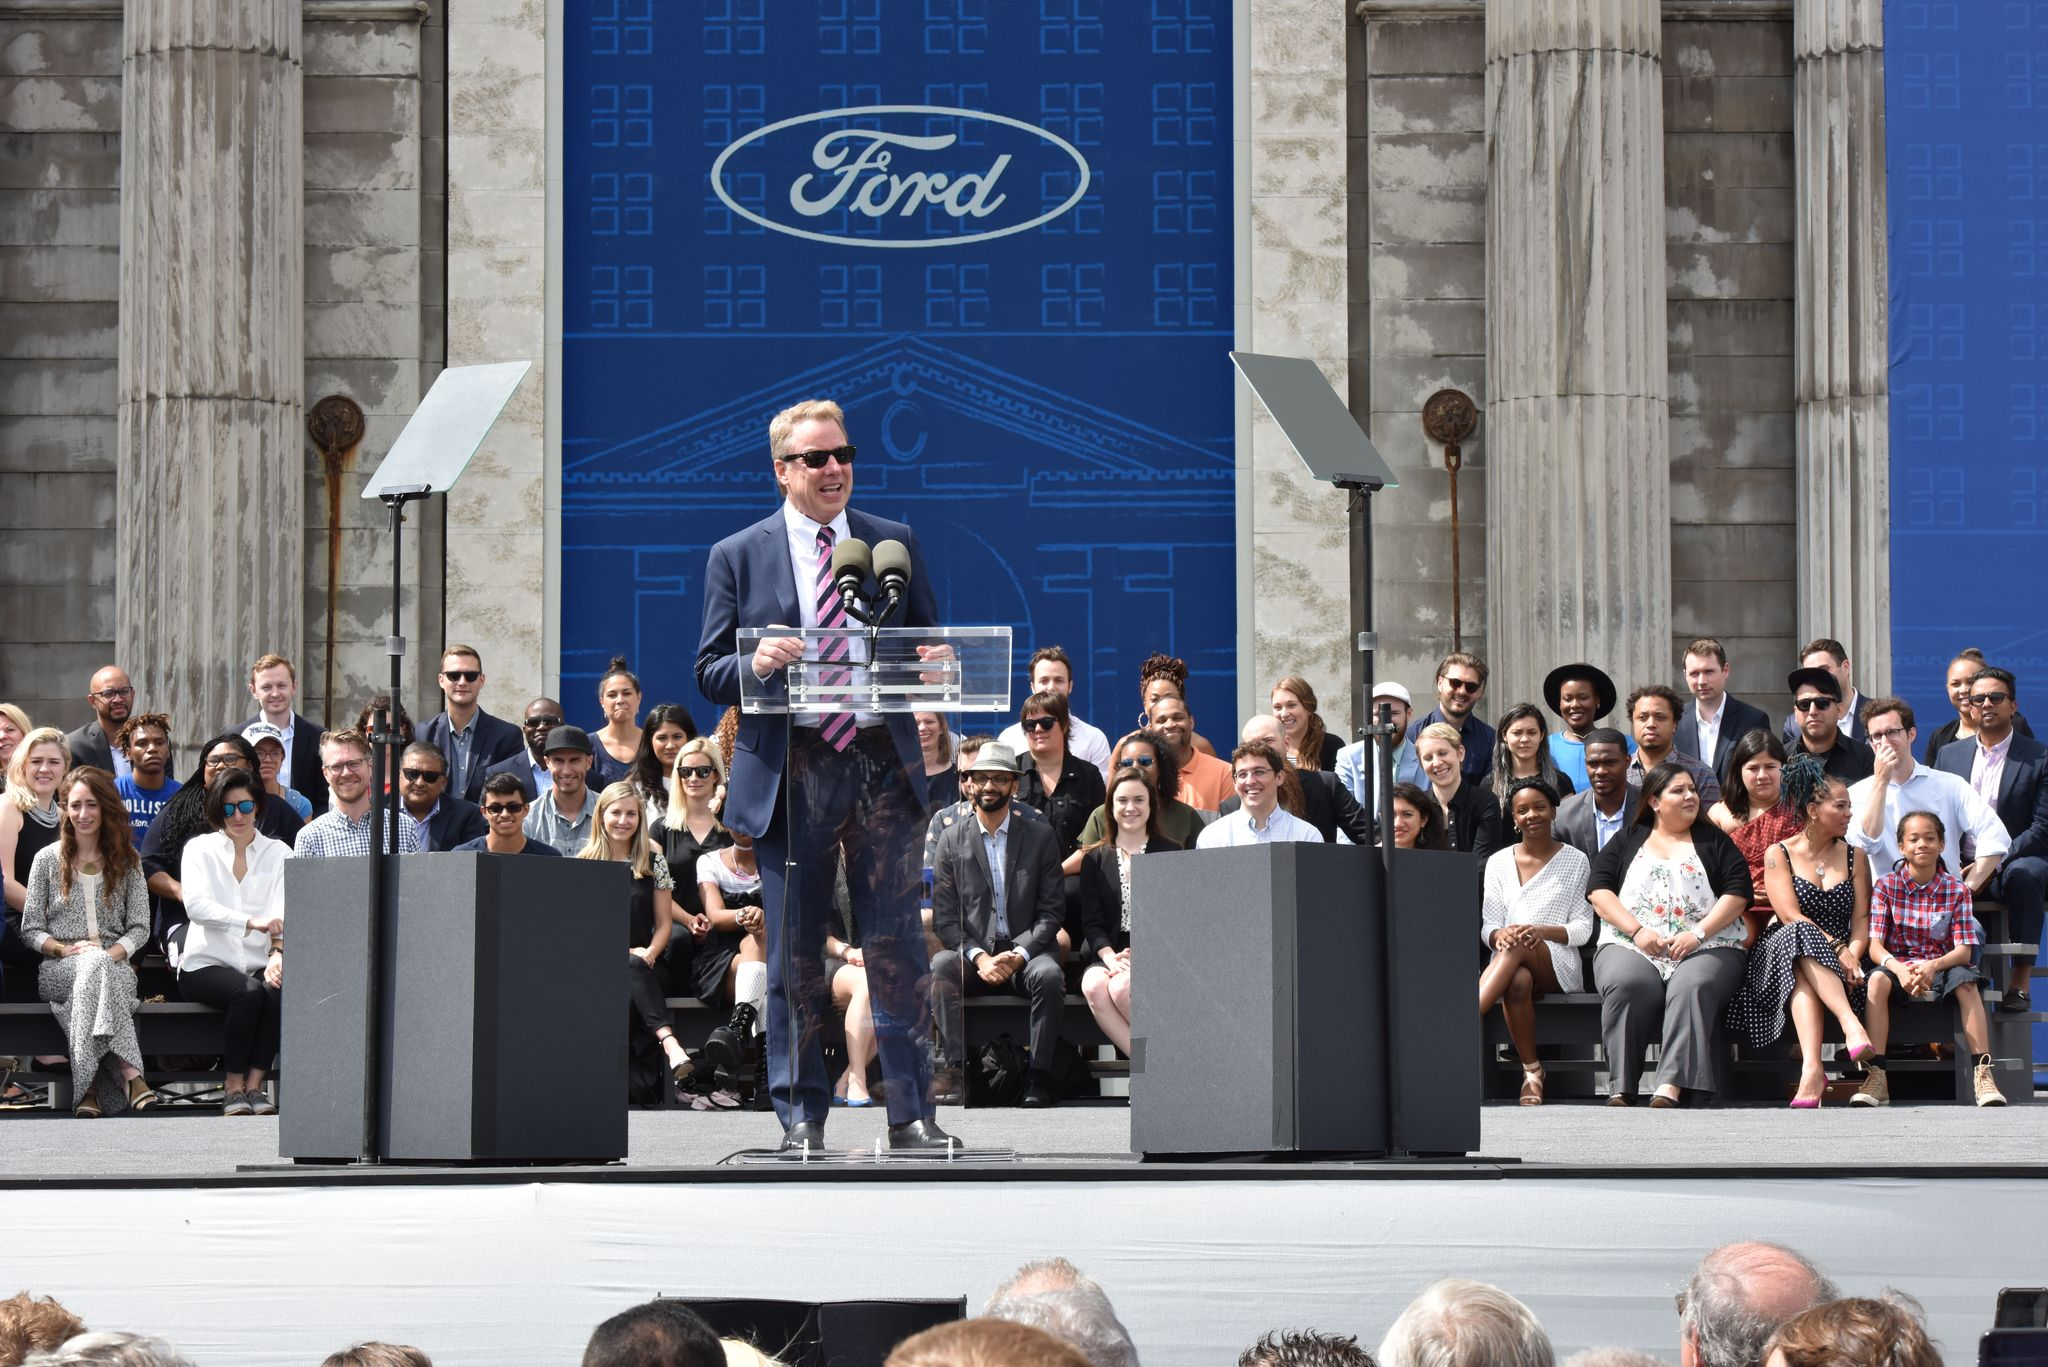 Bill Ford speaking in front of Michigan Central to an audience.